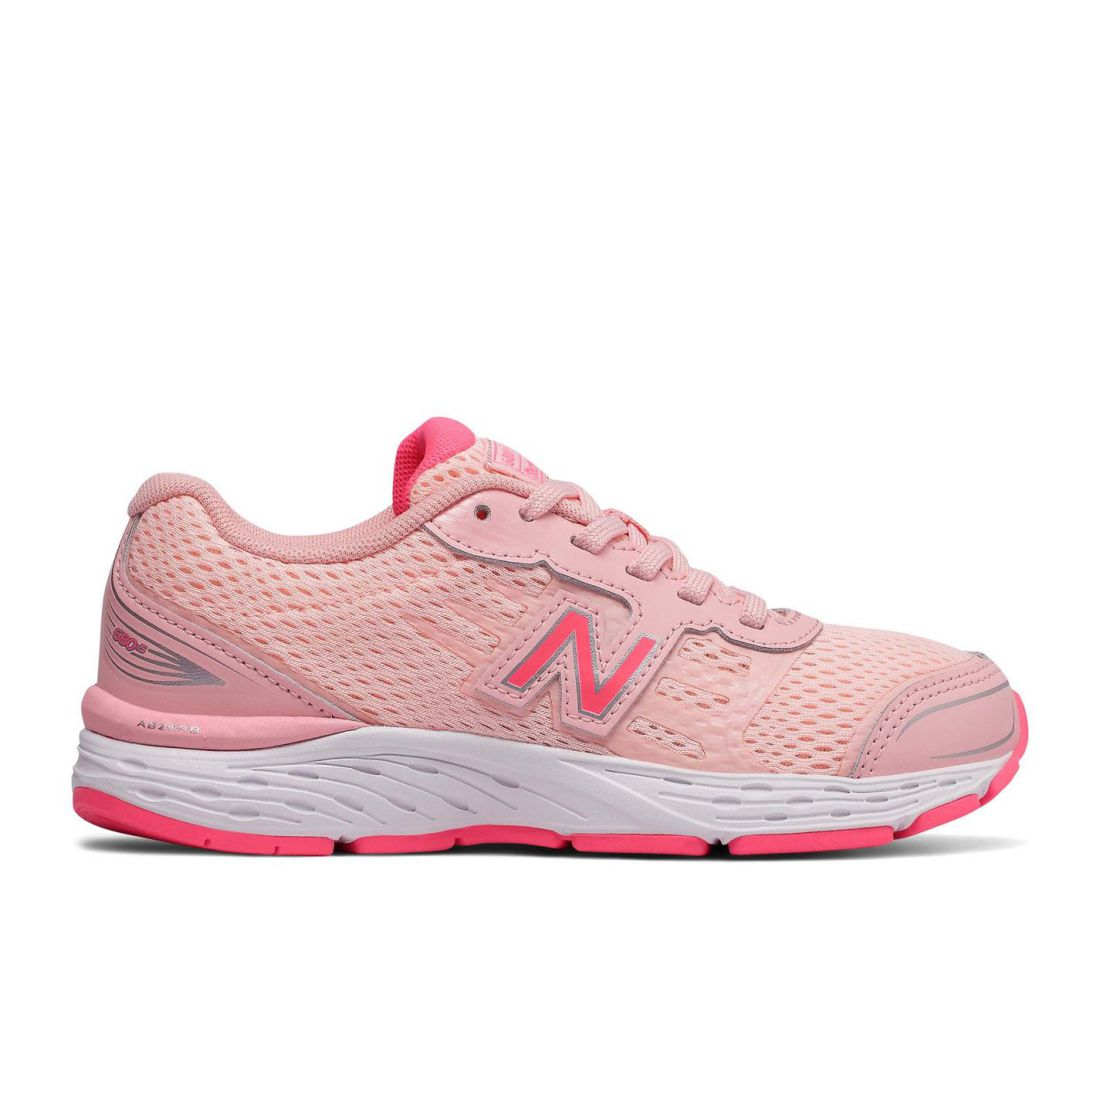 8a4d8b5c Details about New Balance Kids Girls K680v5 Trainers Junior Road Running  Shoes Lace Up Padded